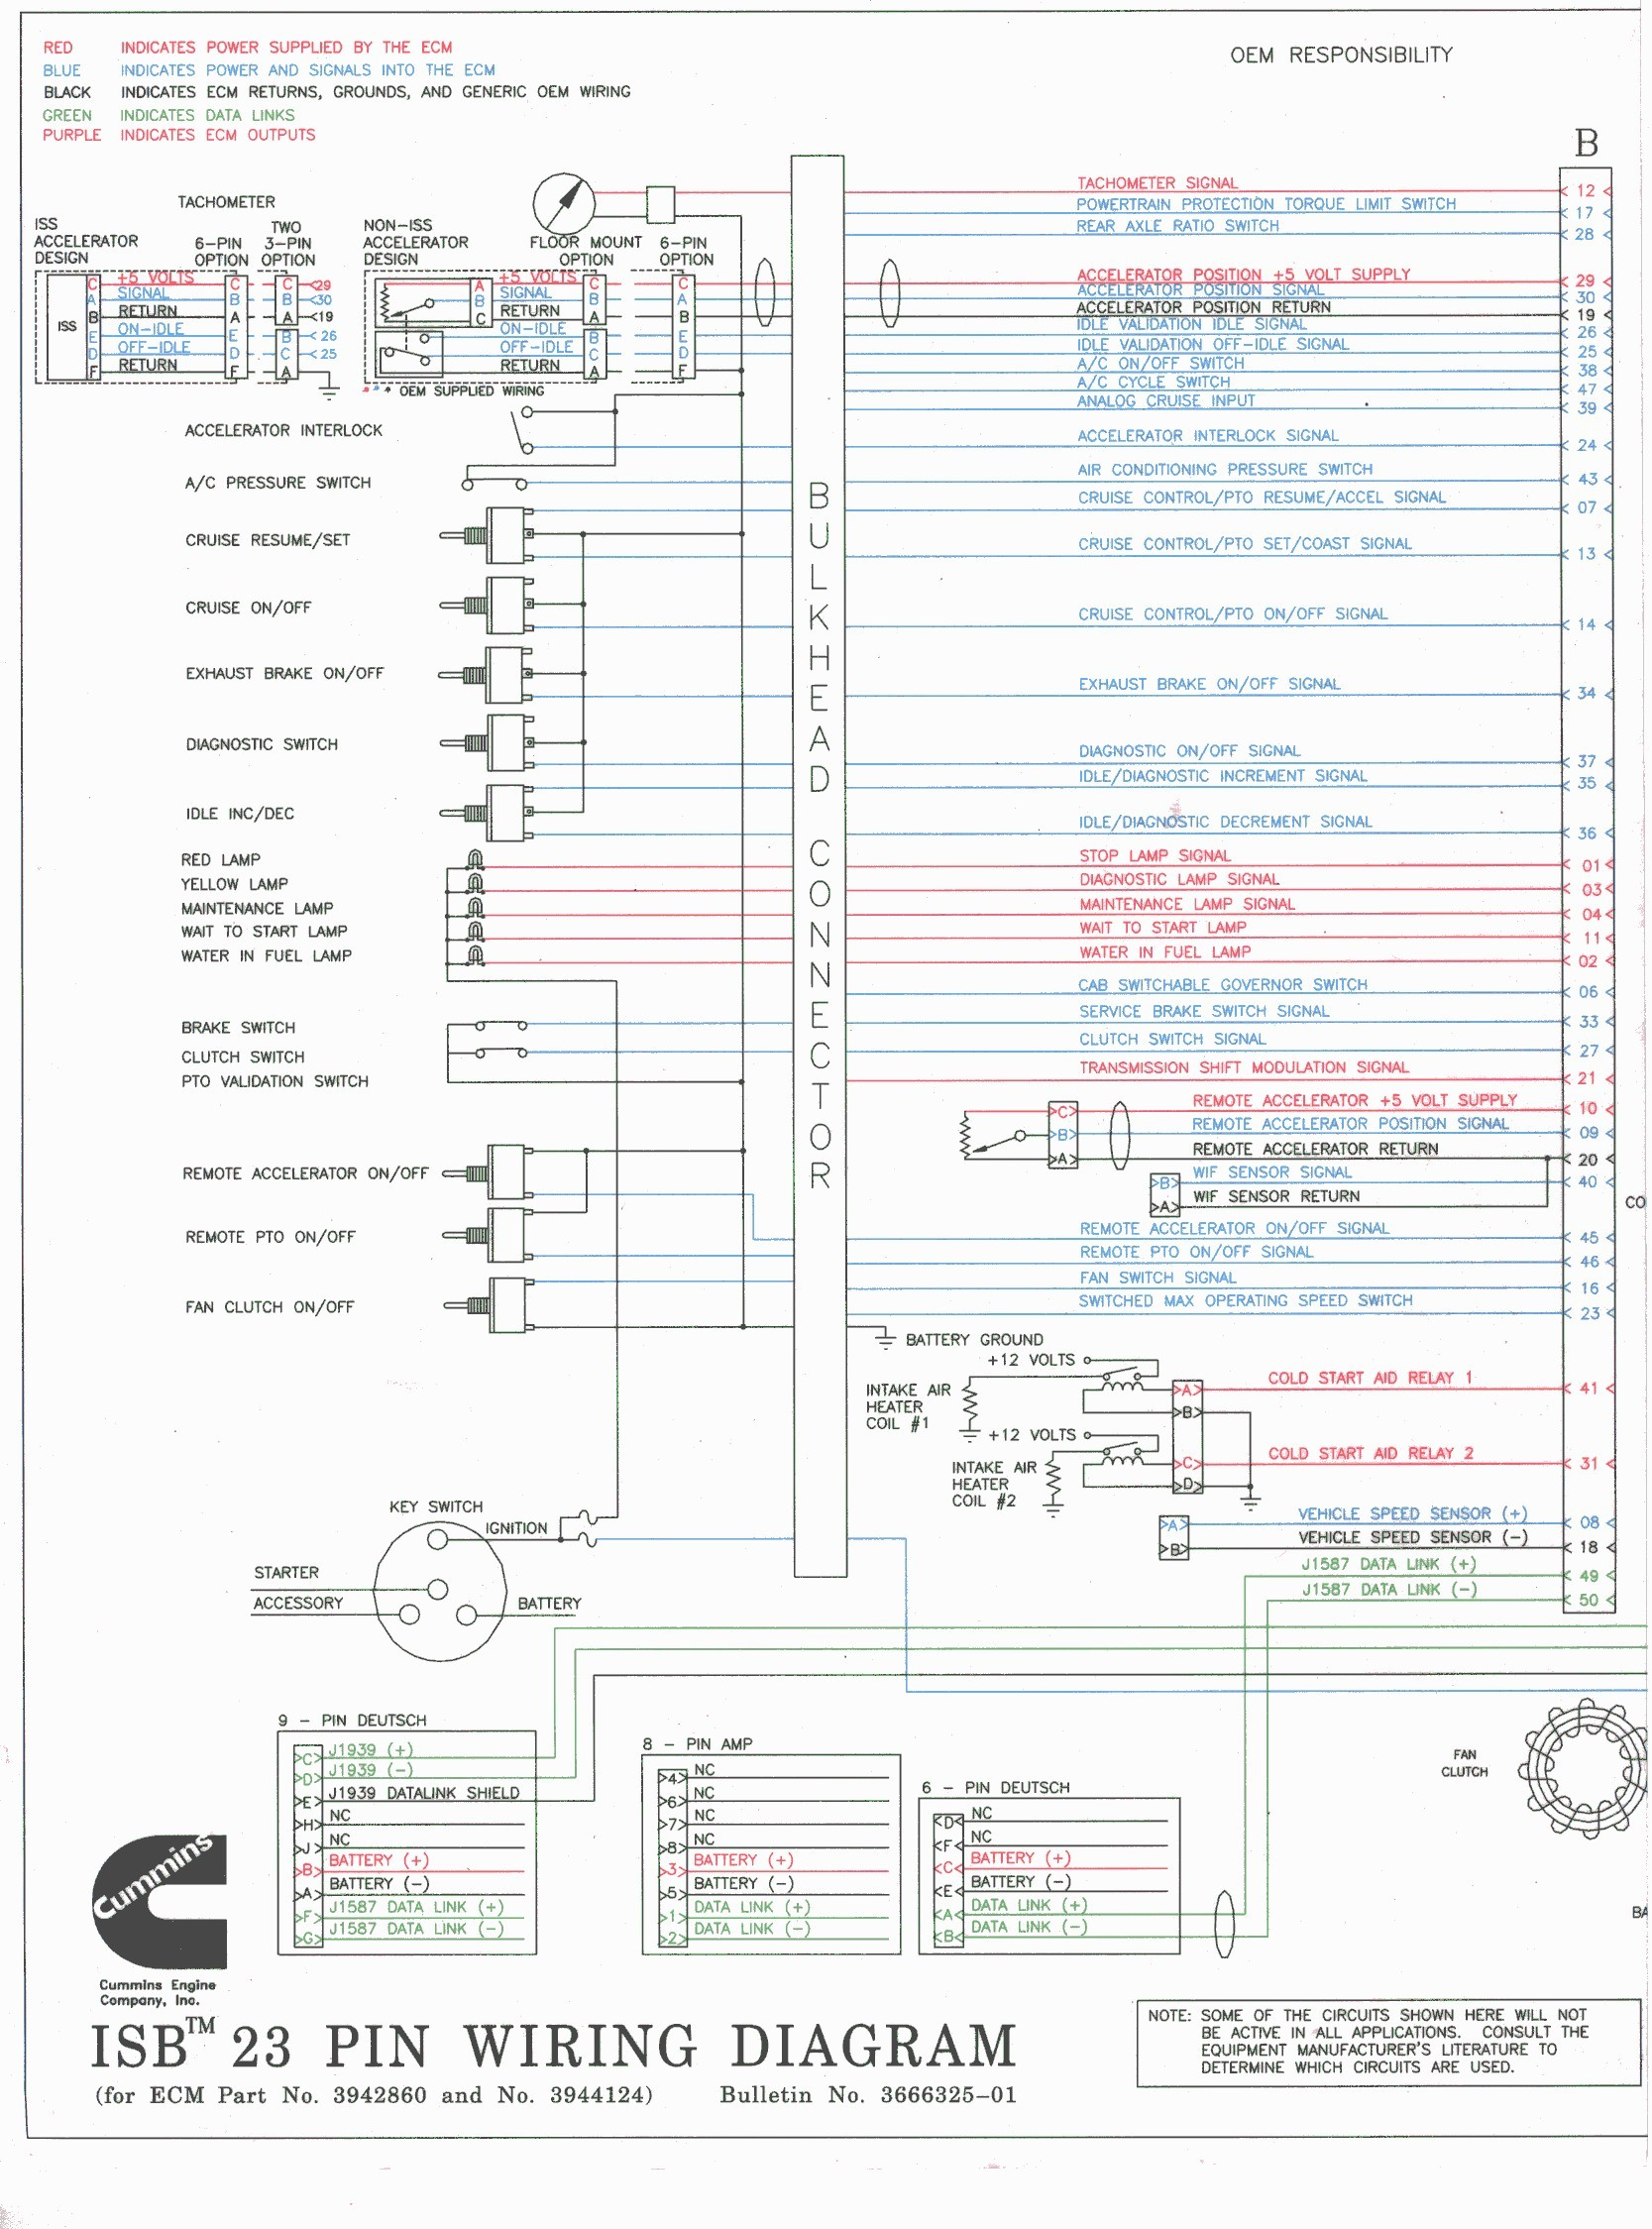 Dodge Obd2 Wiring Diagram | Wiring Liry on aldl wiring diagram, honda wiring diagram, sensor wiring diagram, transmission wiring diagram, usb wiring diagram, egr wiring diagram, chevy s10 cluster wiring diagram, obdii wiring diagram, pcm wiring diagram, wifi wiring diagram, abs wiring diagram, obd0 wiring diagram, engine wiring diagram, nissan wiring diagram, auto wiring diagram, obd1 wiring diagram, ecu wiring diagram, software wiring diagram, computer wiring diagram, data wiring diagram,